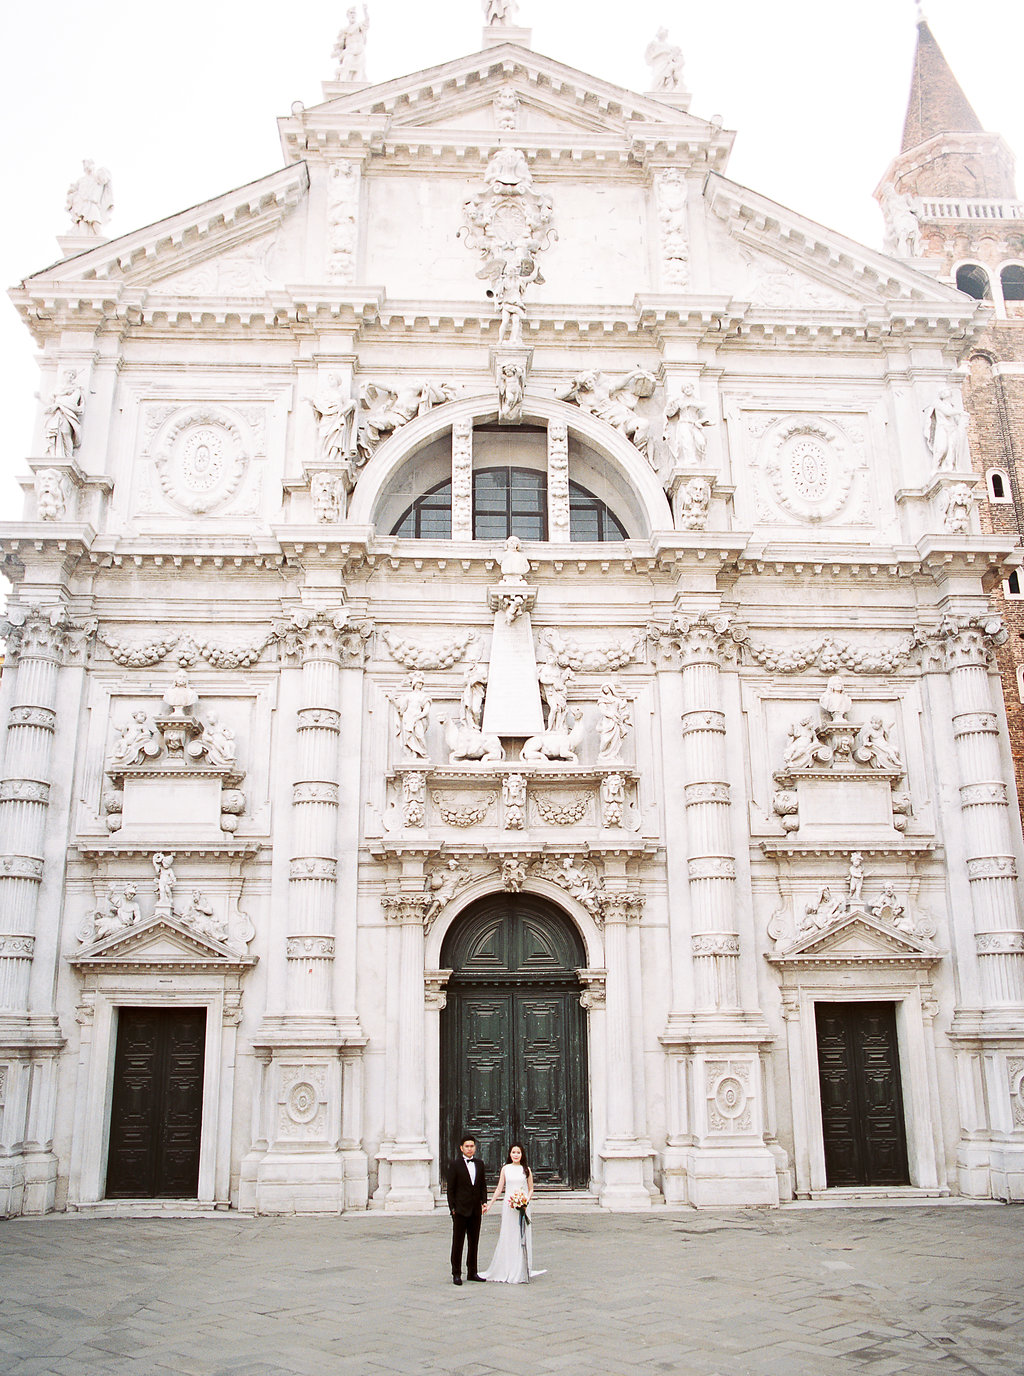 Destination pre-wedding session in Venice Italy | Tanja Kibogo photography film1.JPG